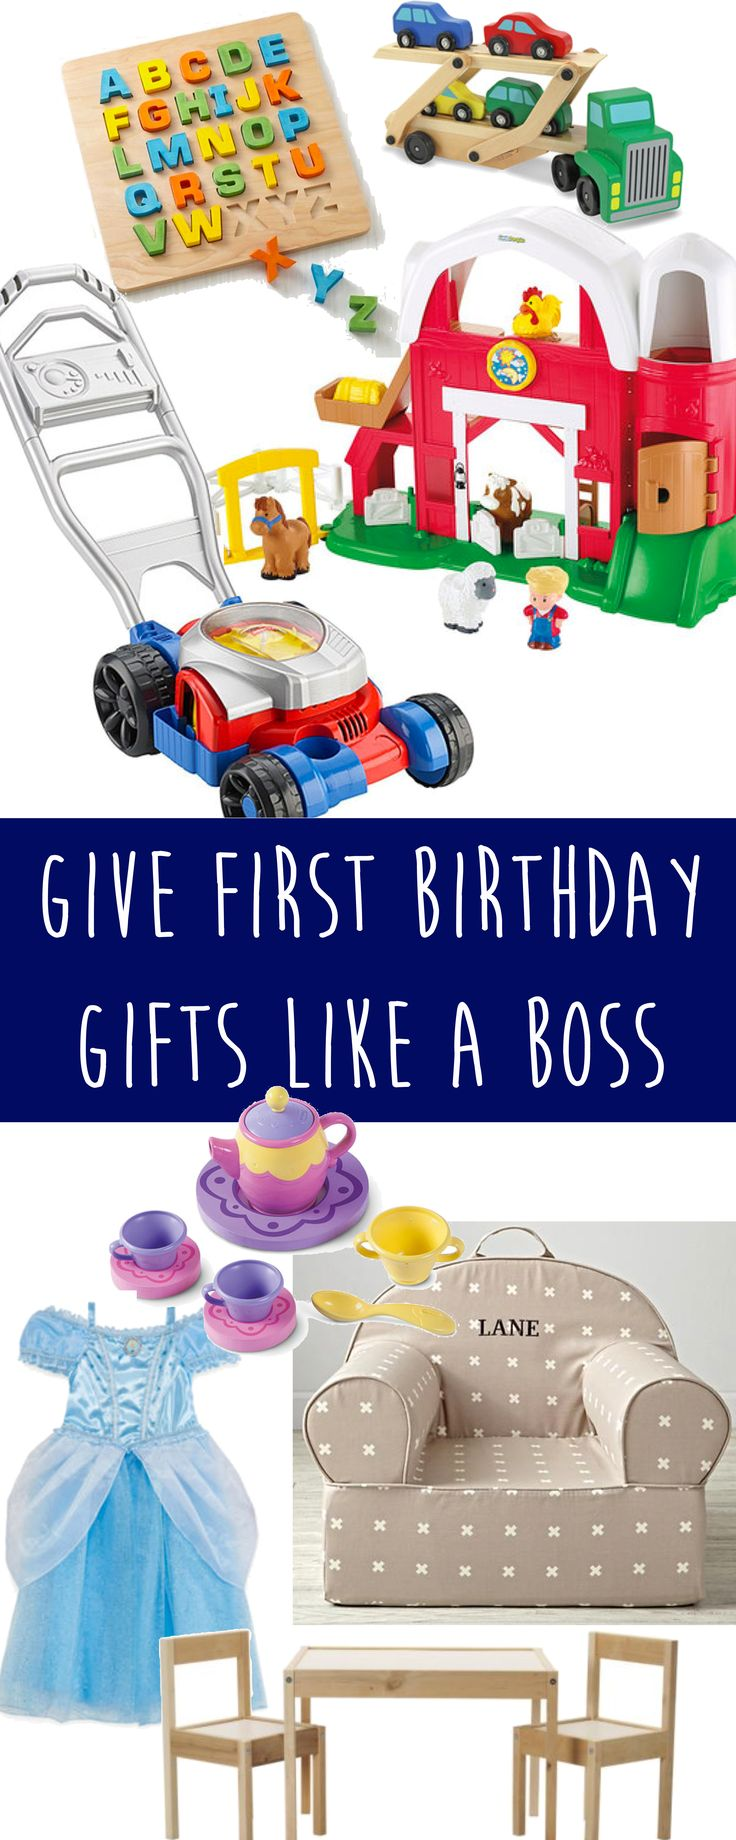 25+ best ideas about First Birthday Gifts on Pinterest.